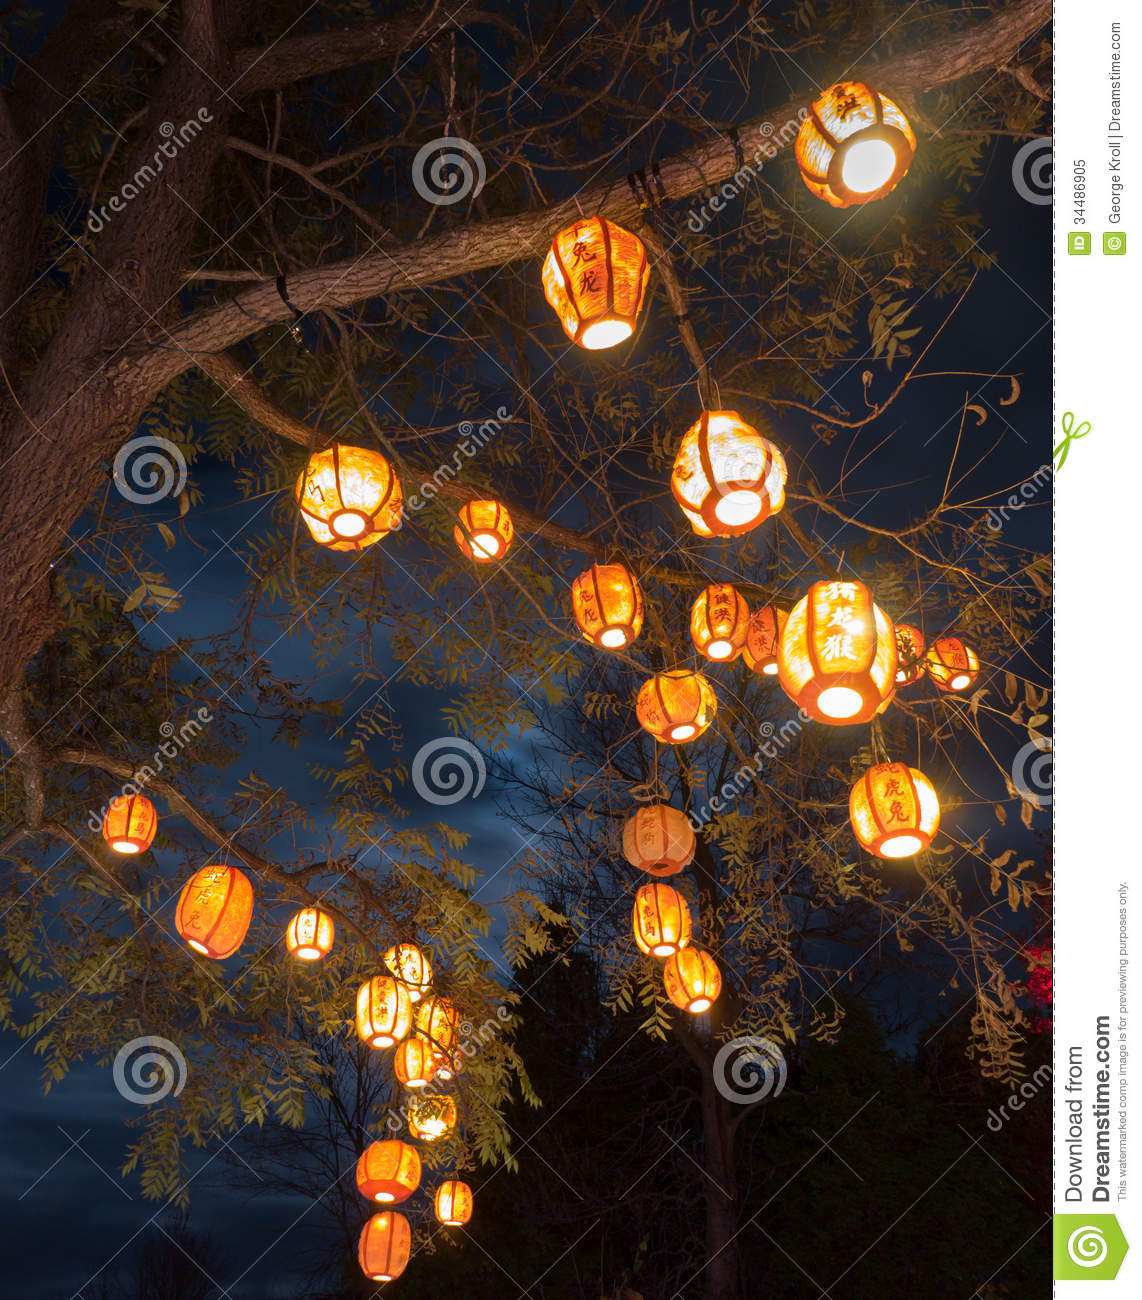 Laptop Wallpapers Fall Lanterns In Tree Stock Image Image Of Dark Eventide